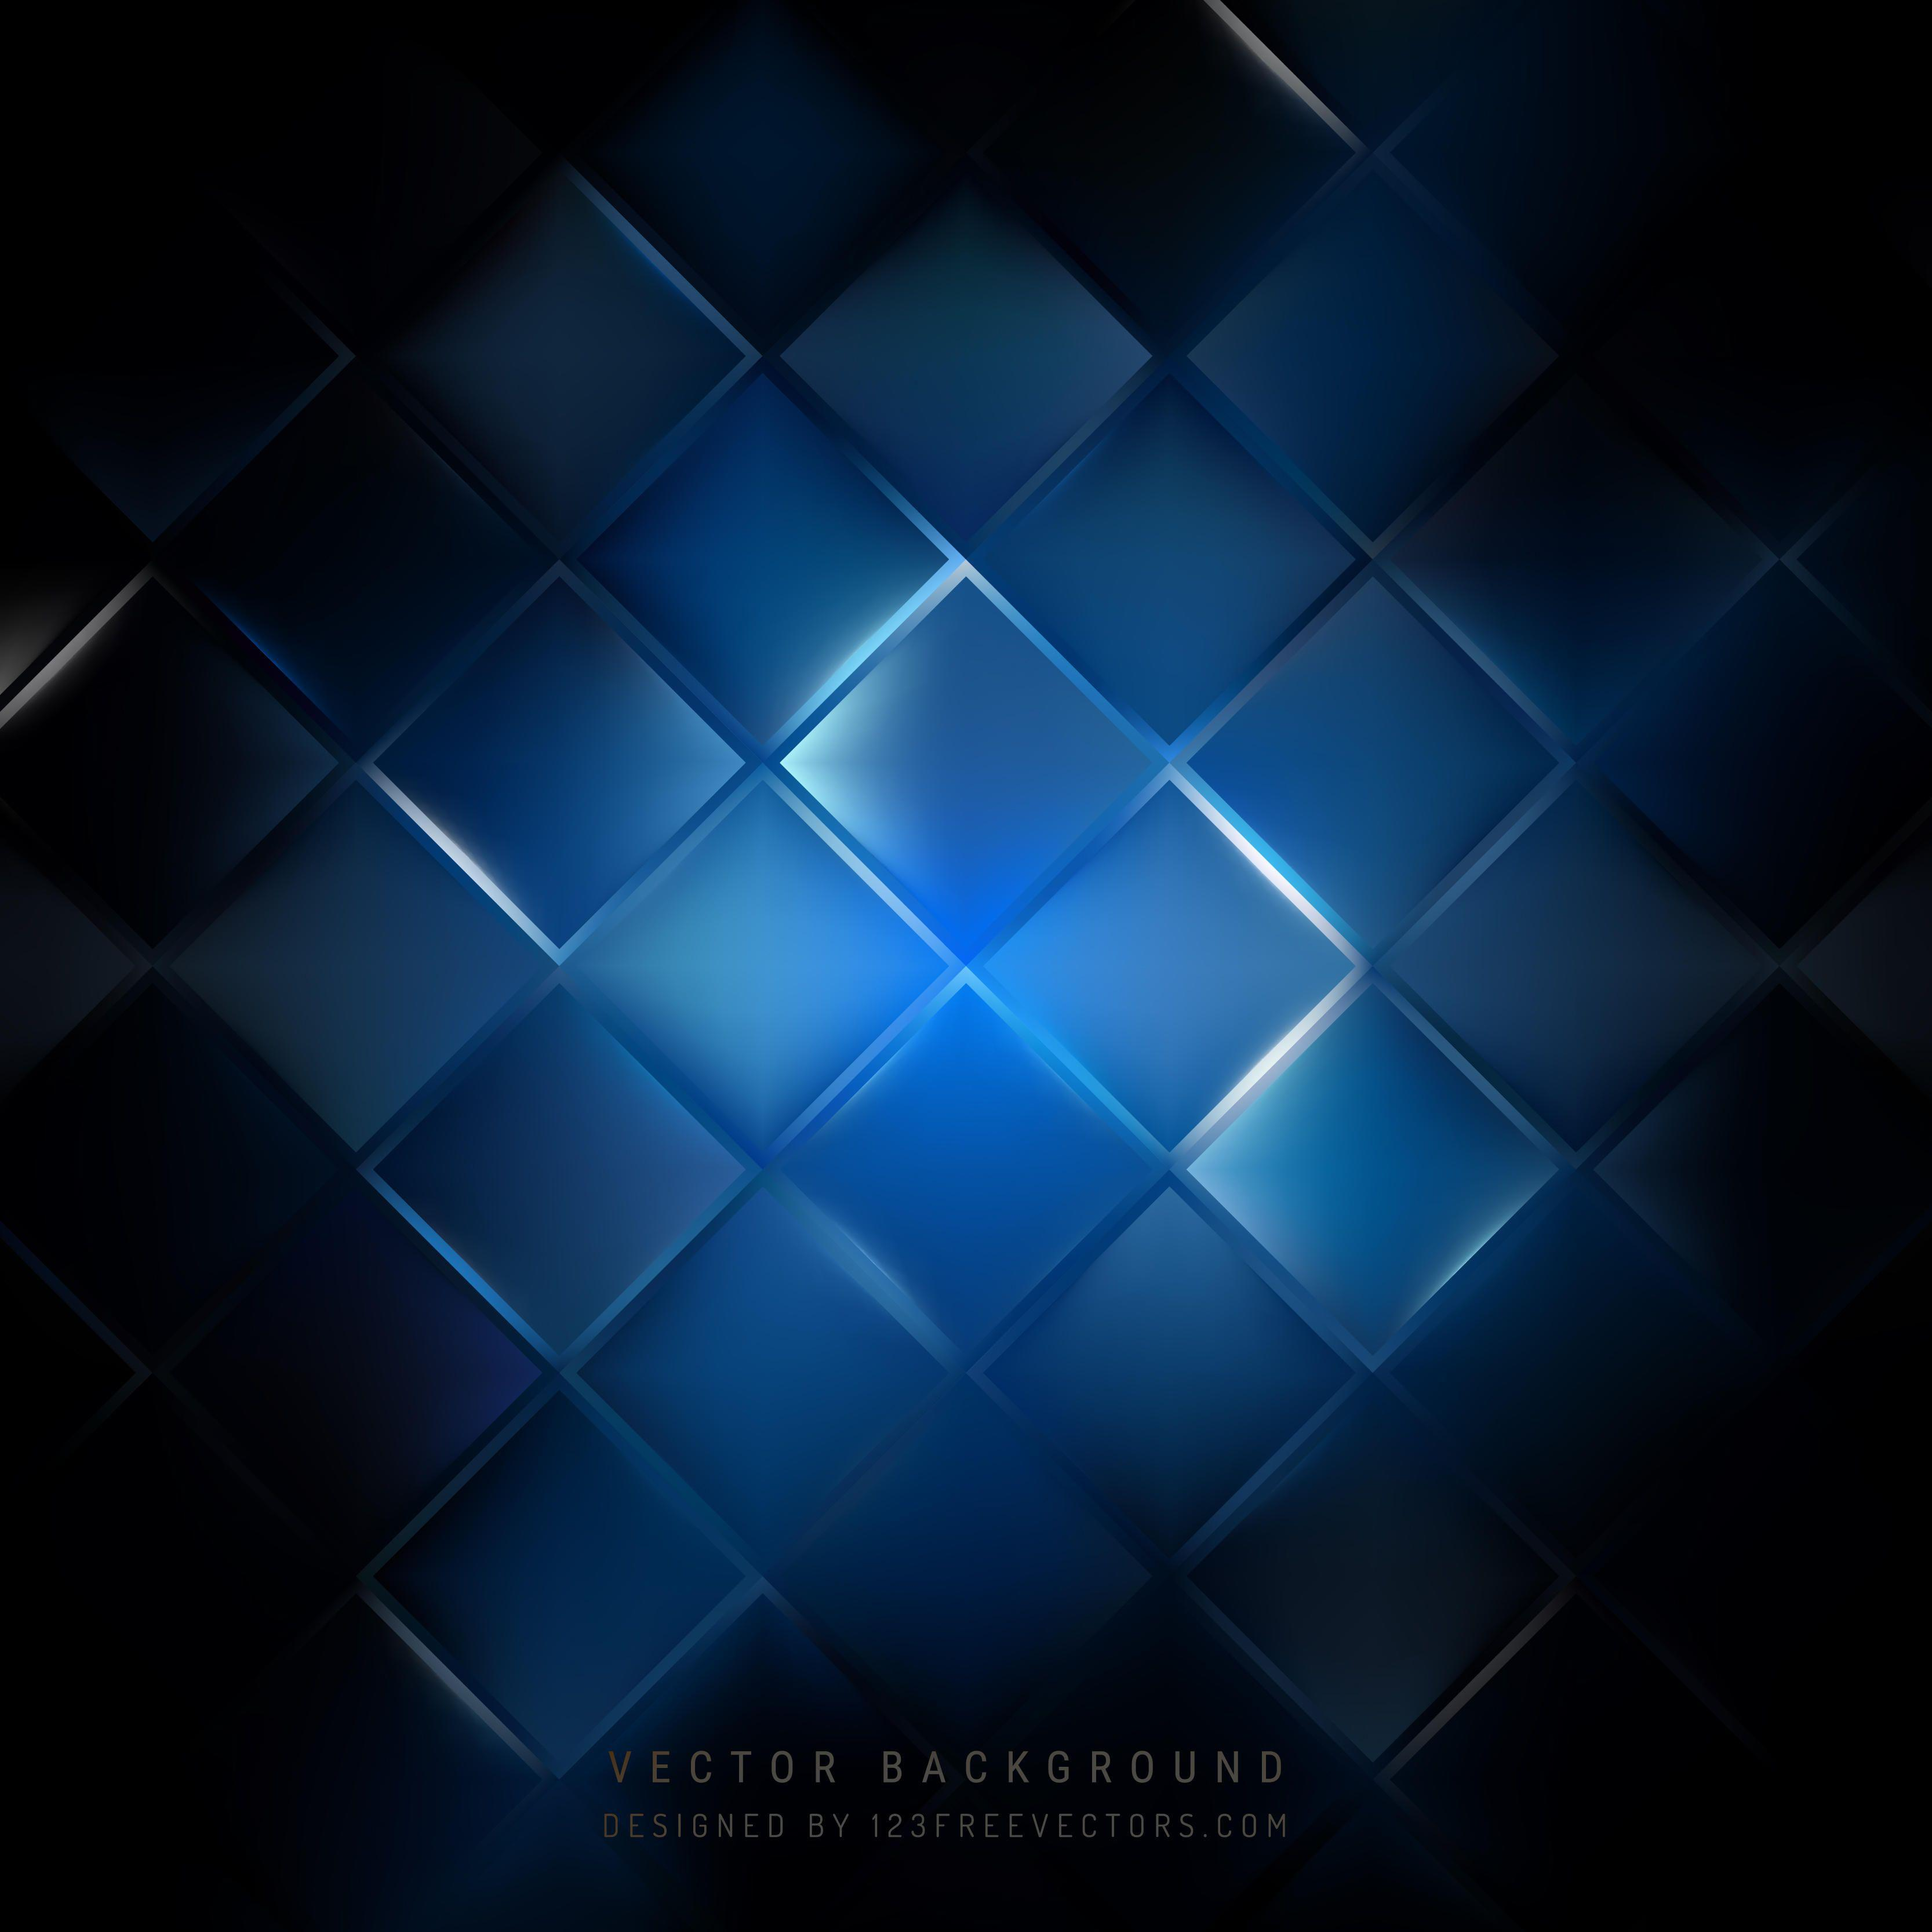 Blue And Black Backgrounds